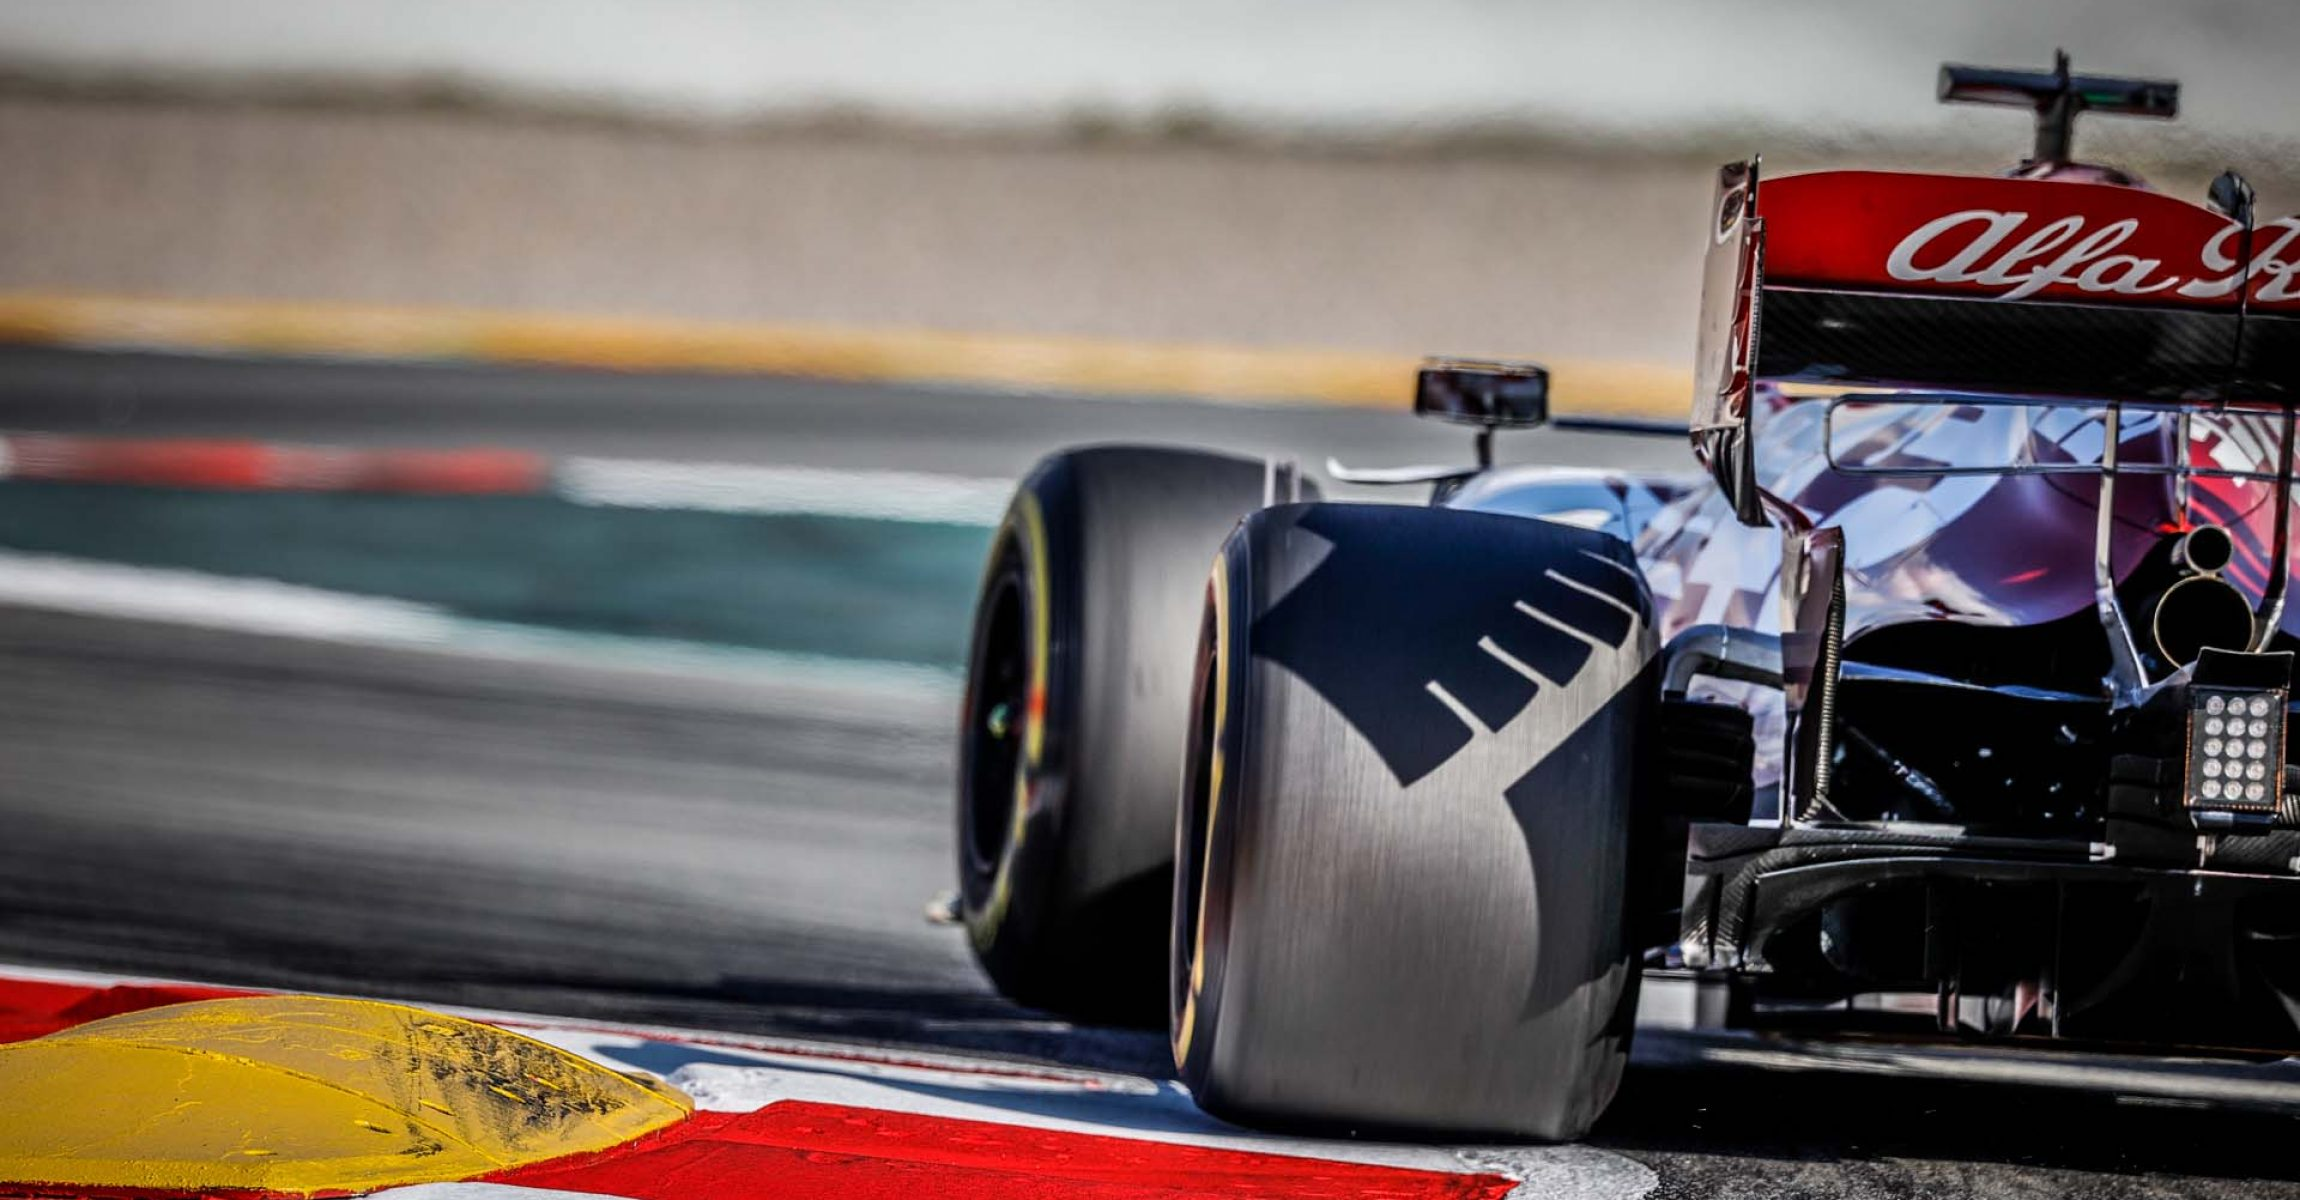 99 GIOVINAZZI Antonio (ita), Alfa Romeo Racing C39, action during the first session of the Formula 1 Pre-season testing 2020 from February 19 to 21, 2020 on the Circuit de Barcelona-Catalunya, in Montmelo, Barcelona, Spain - Photo Frederic Le Floc'h / DPPI